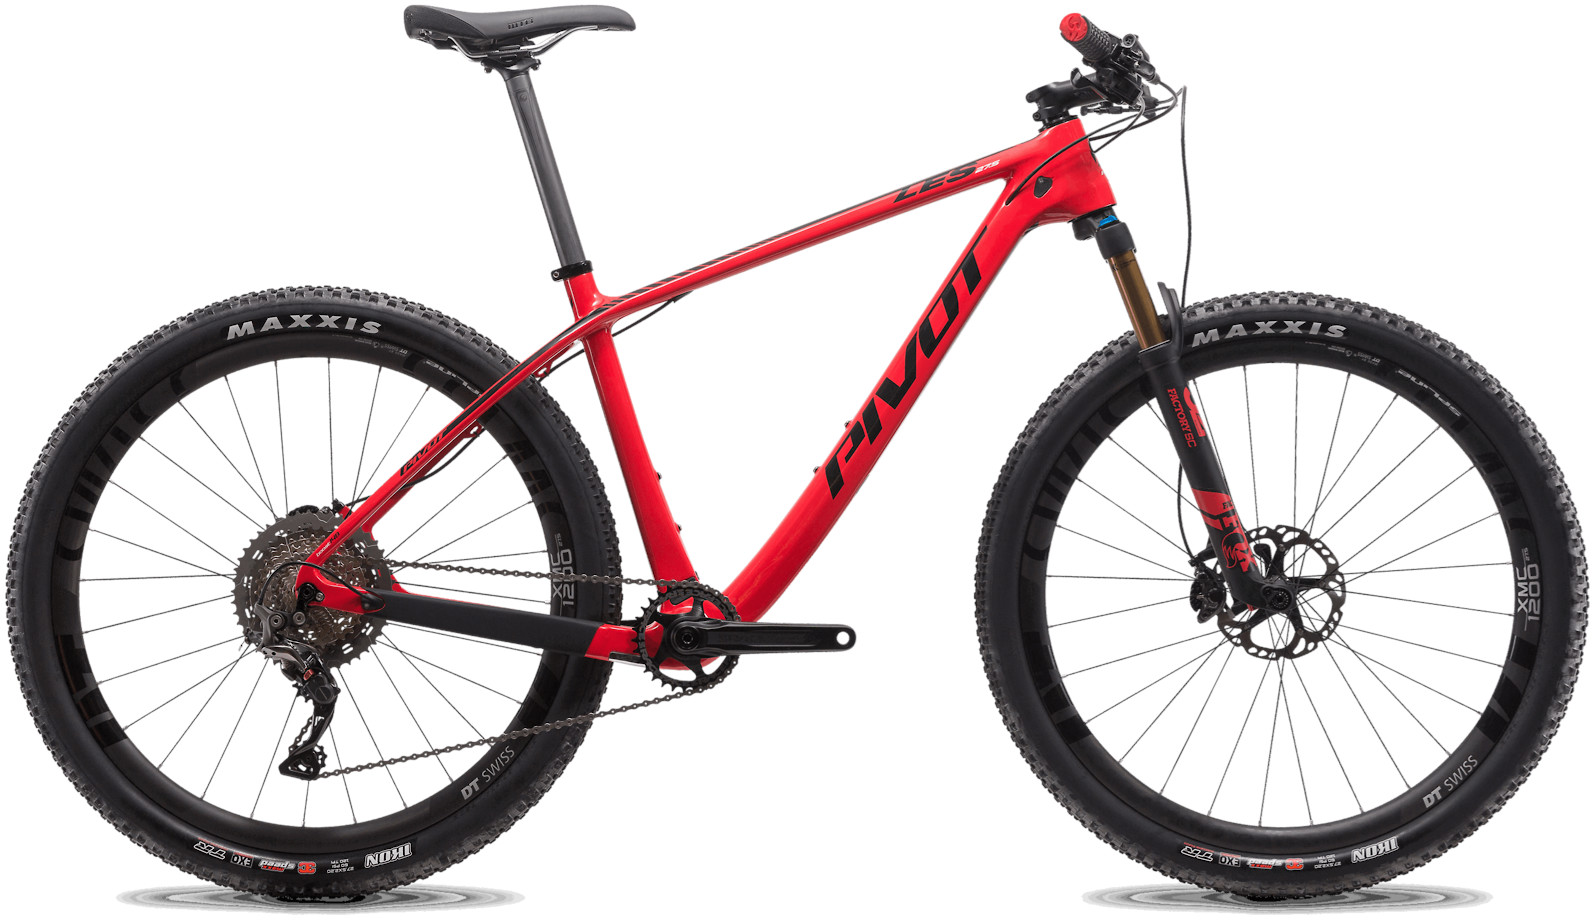 2020 Pivot LES 27.5 Westside Red (Team XTR build pictured)